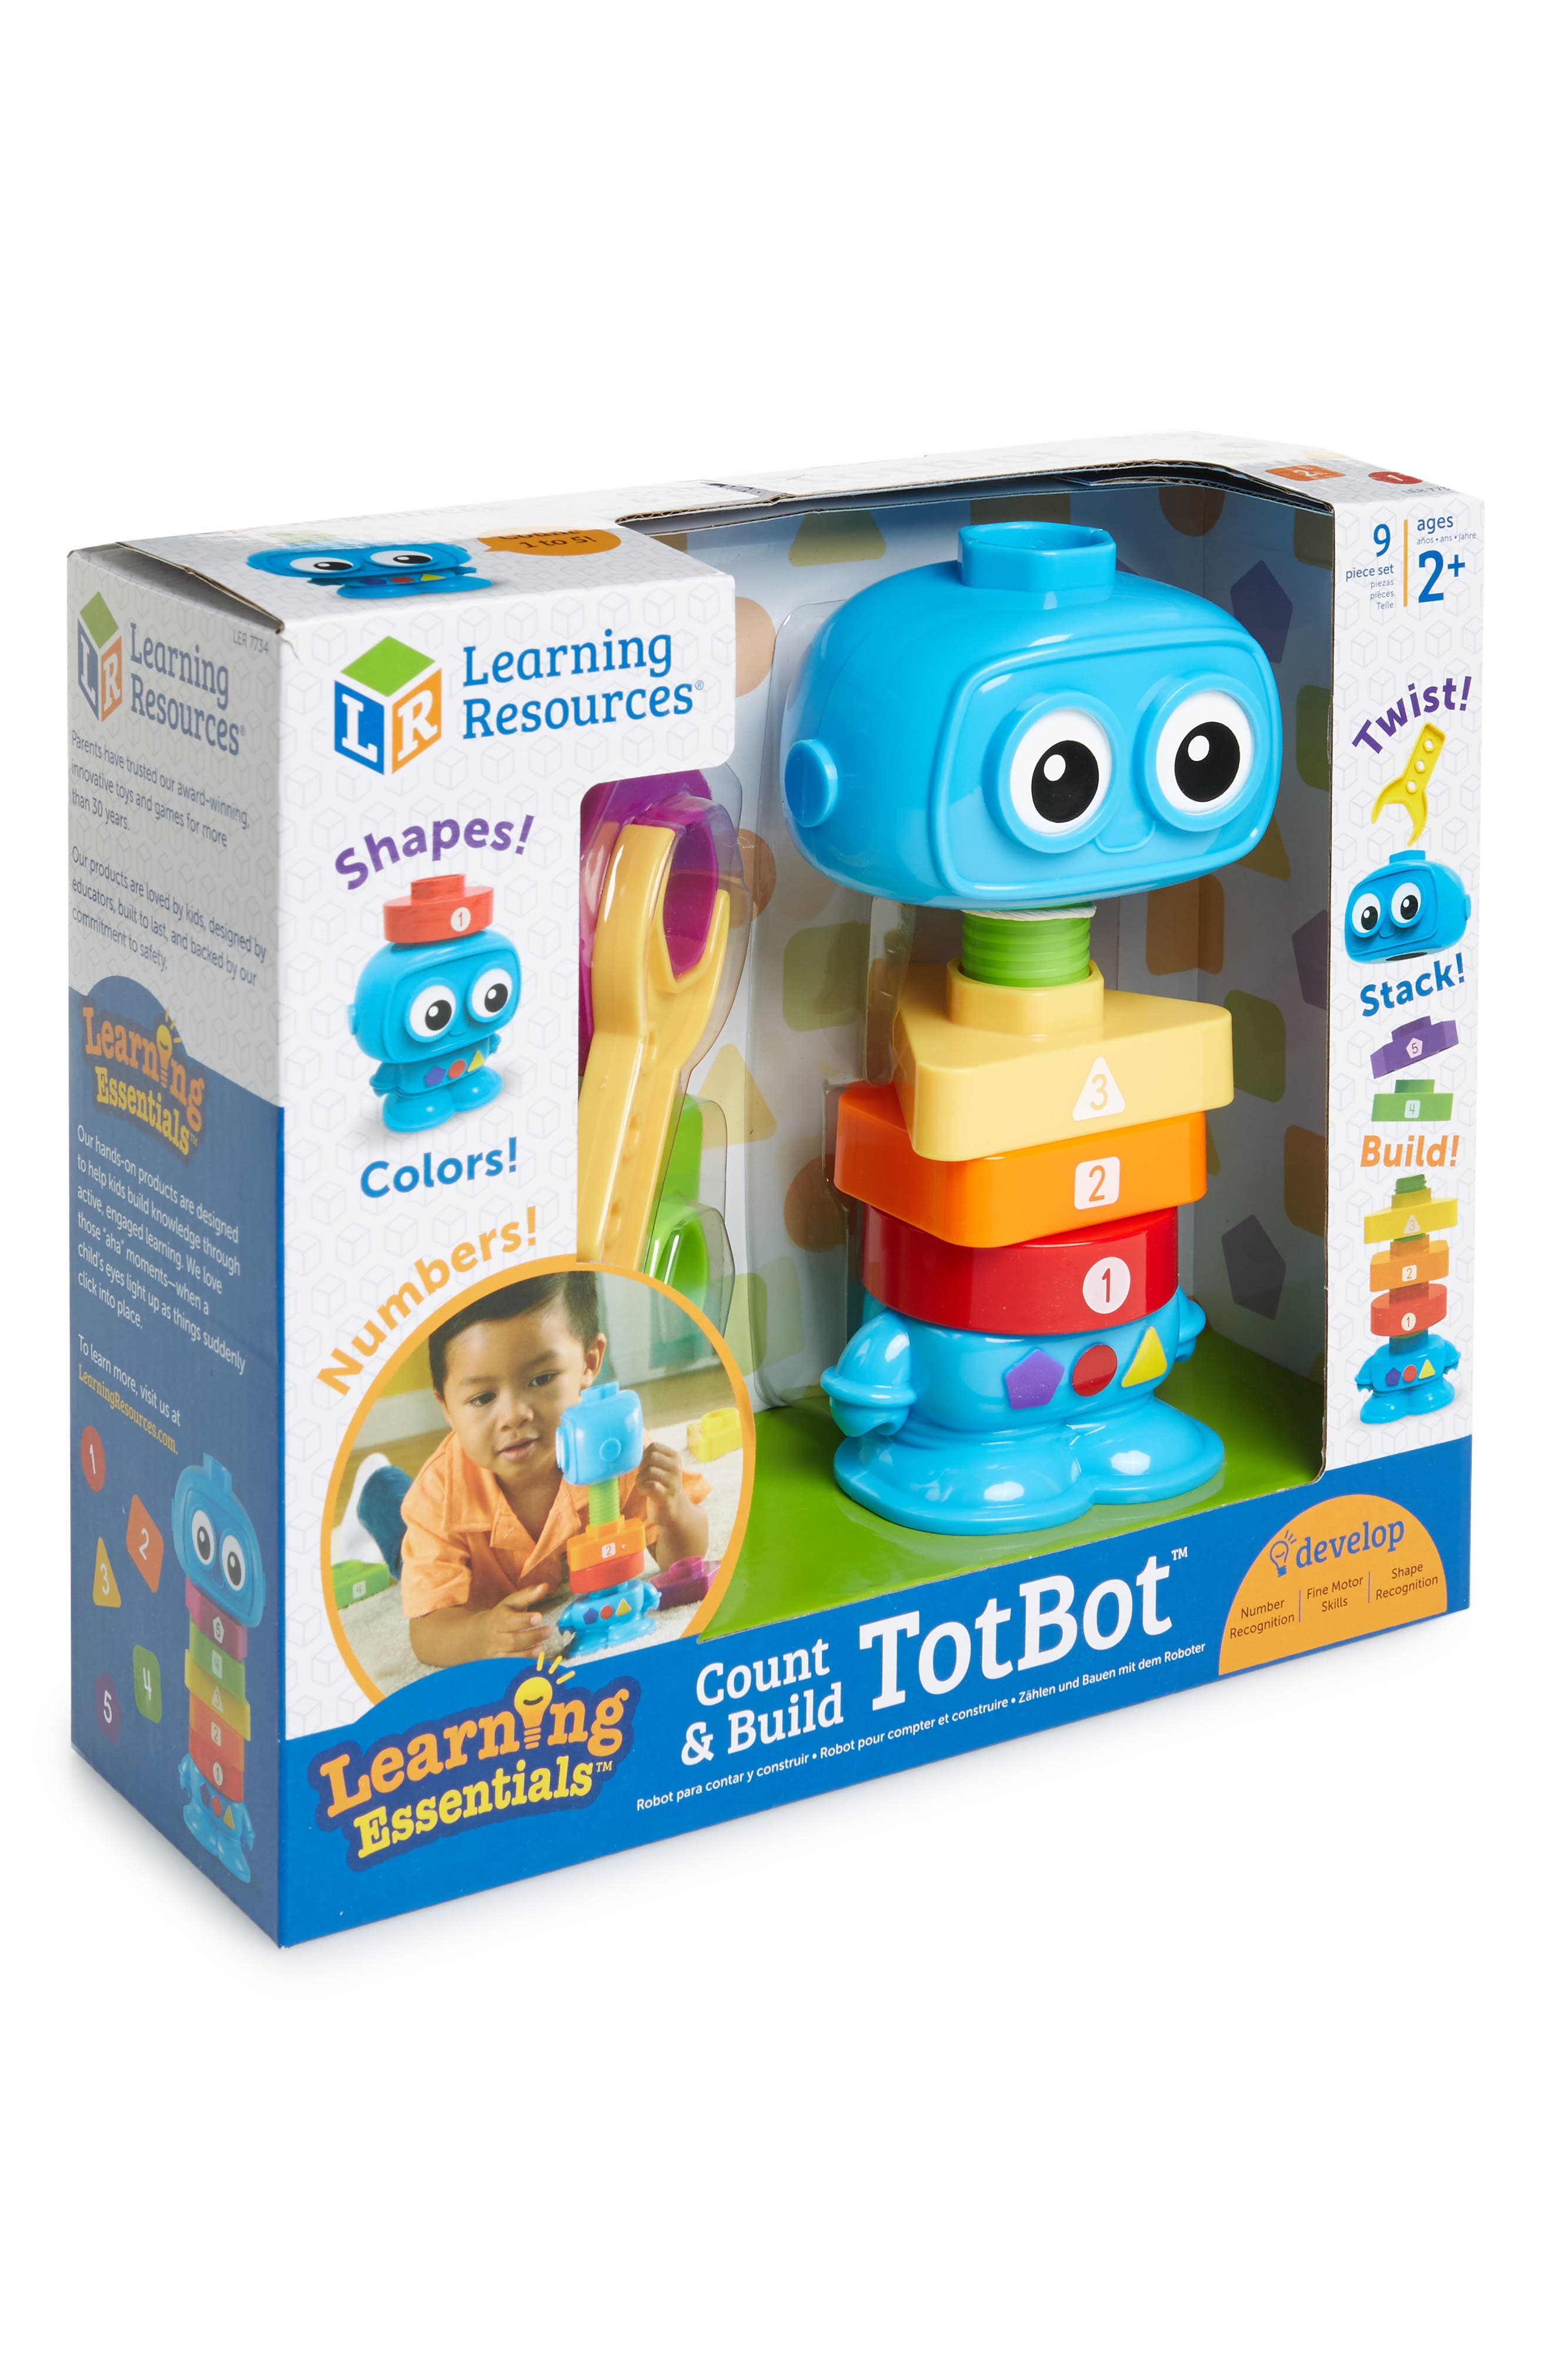 9-Piece Count & Build TotBot Toy,                             Main thumbnail 1, color,                             Turquoise